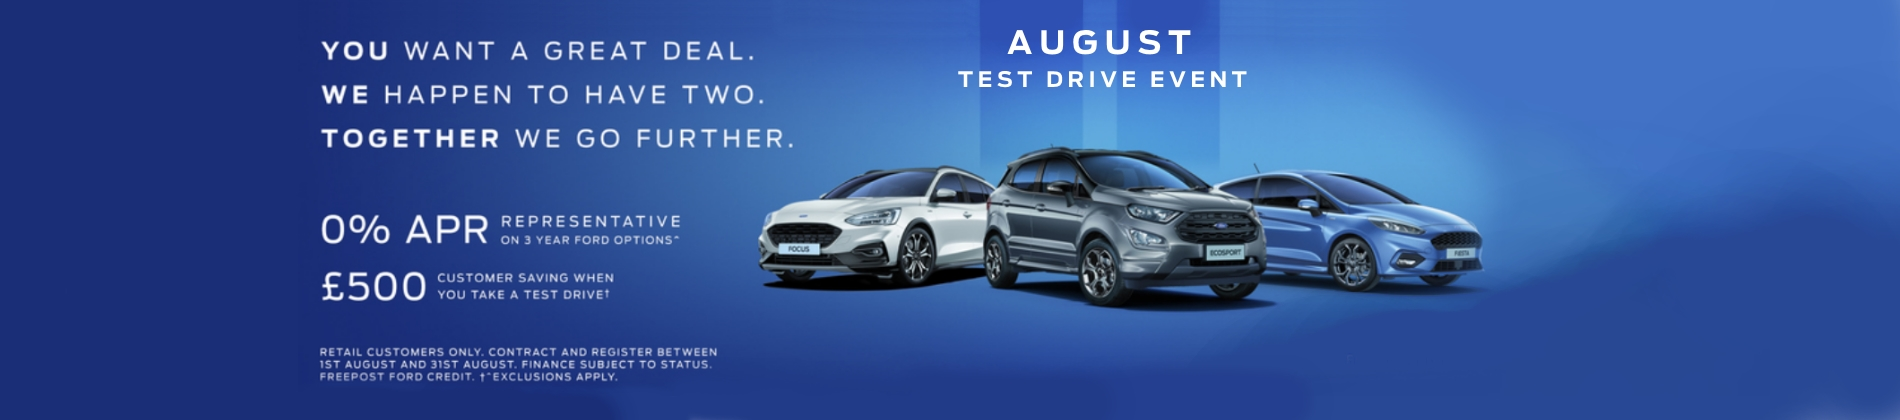 August test drive event